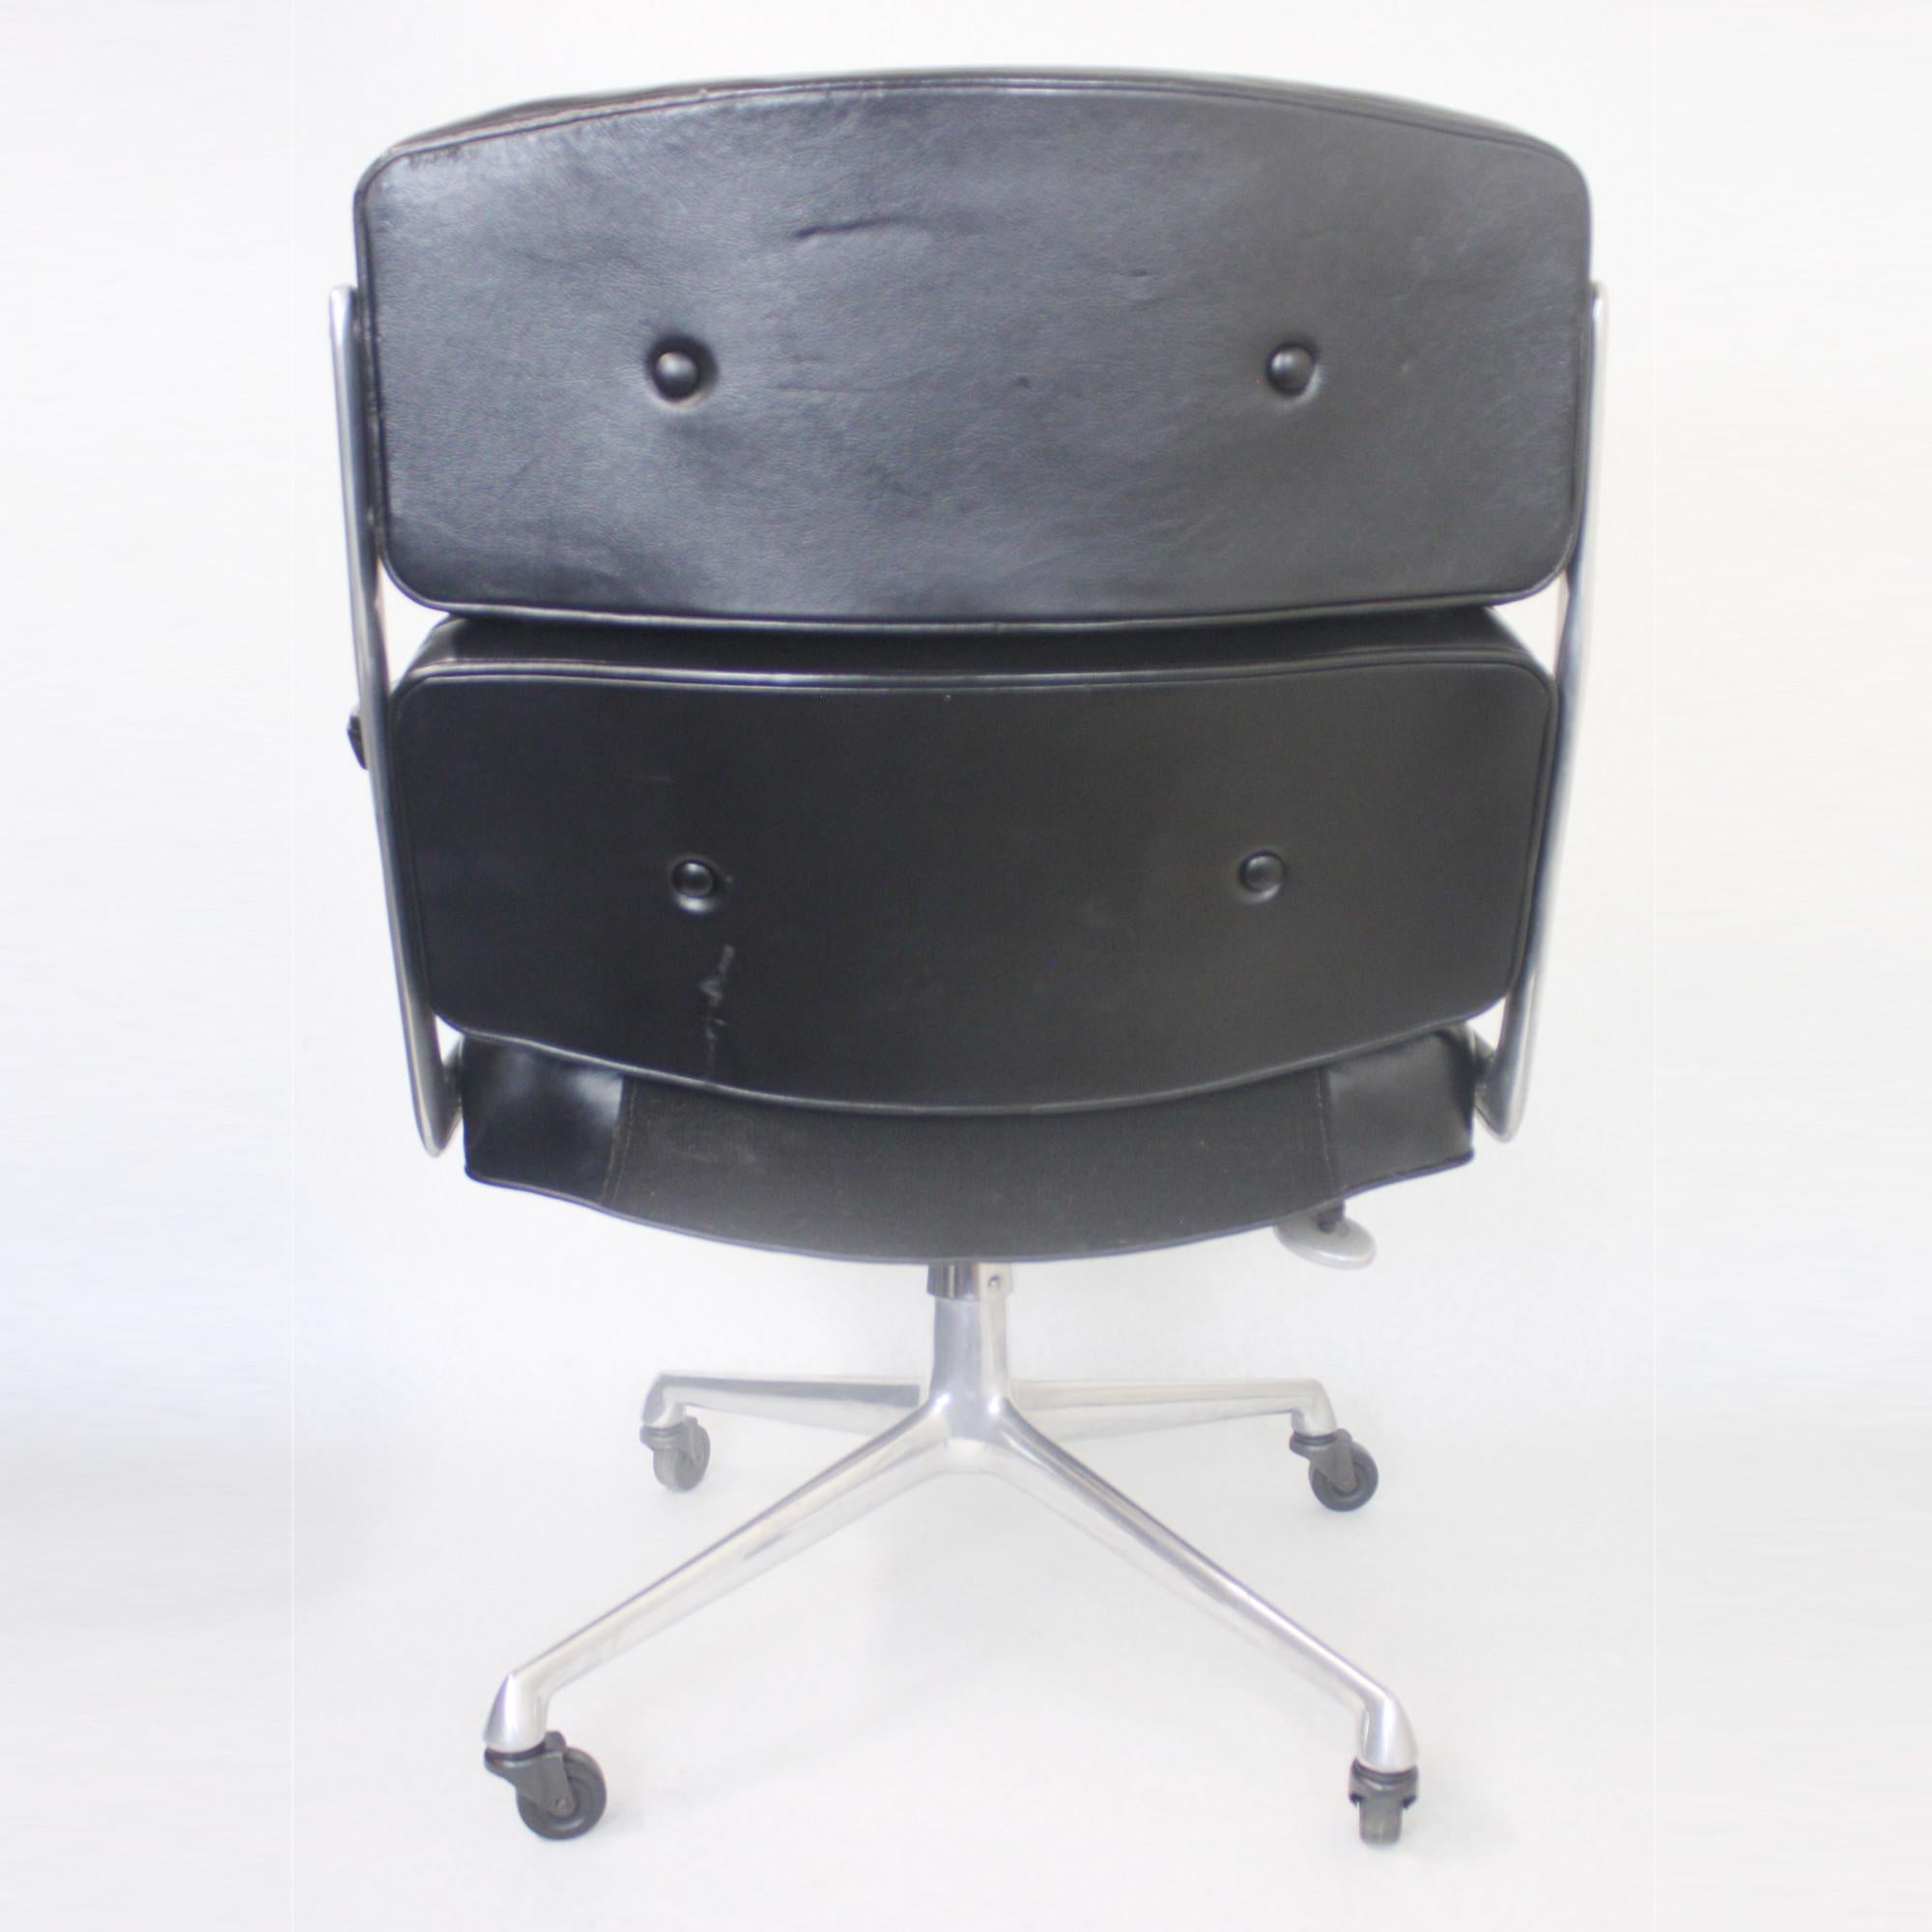 Charmant 1960s Mid Century Modern Herman Miller Time Life Executive Desk Lounge  Chair For Sale 1